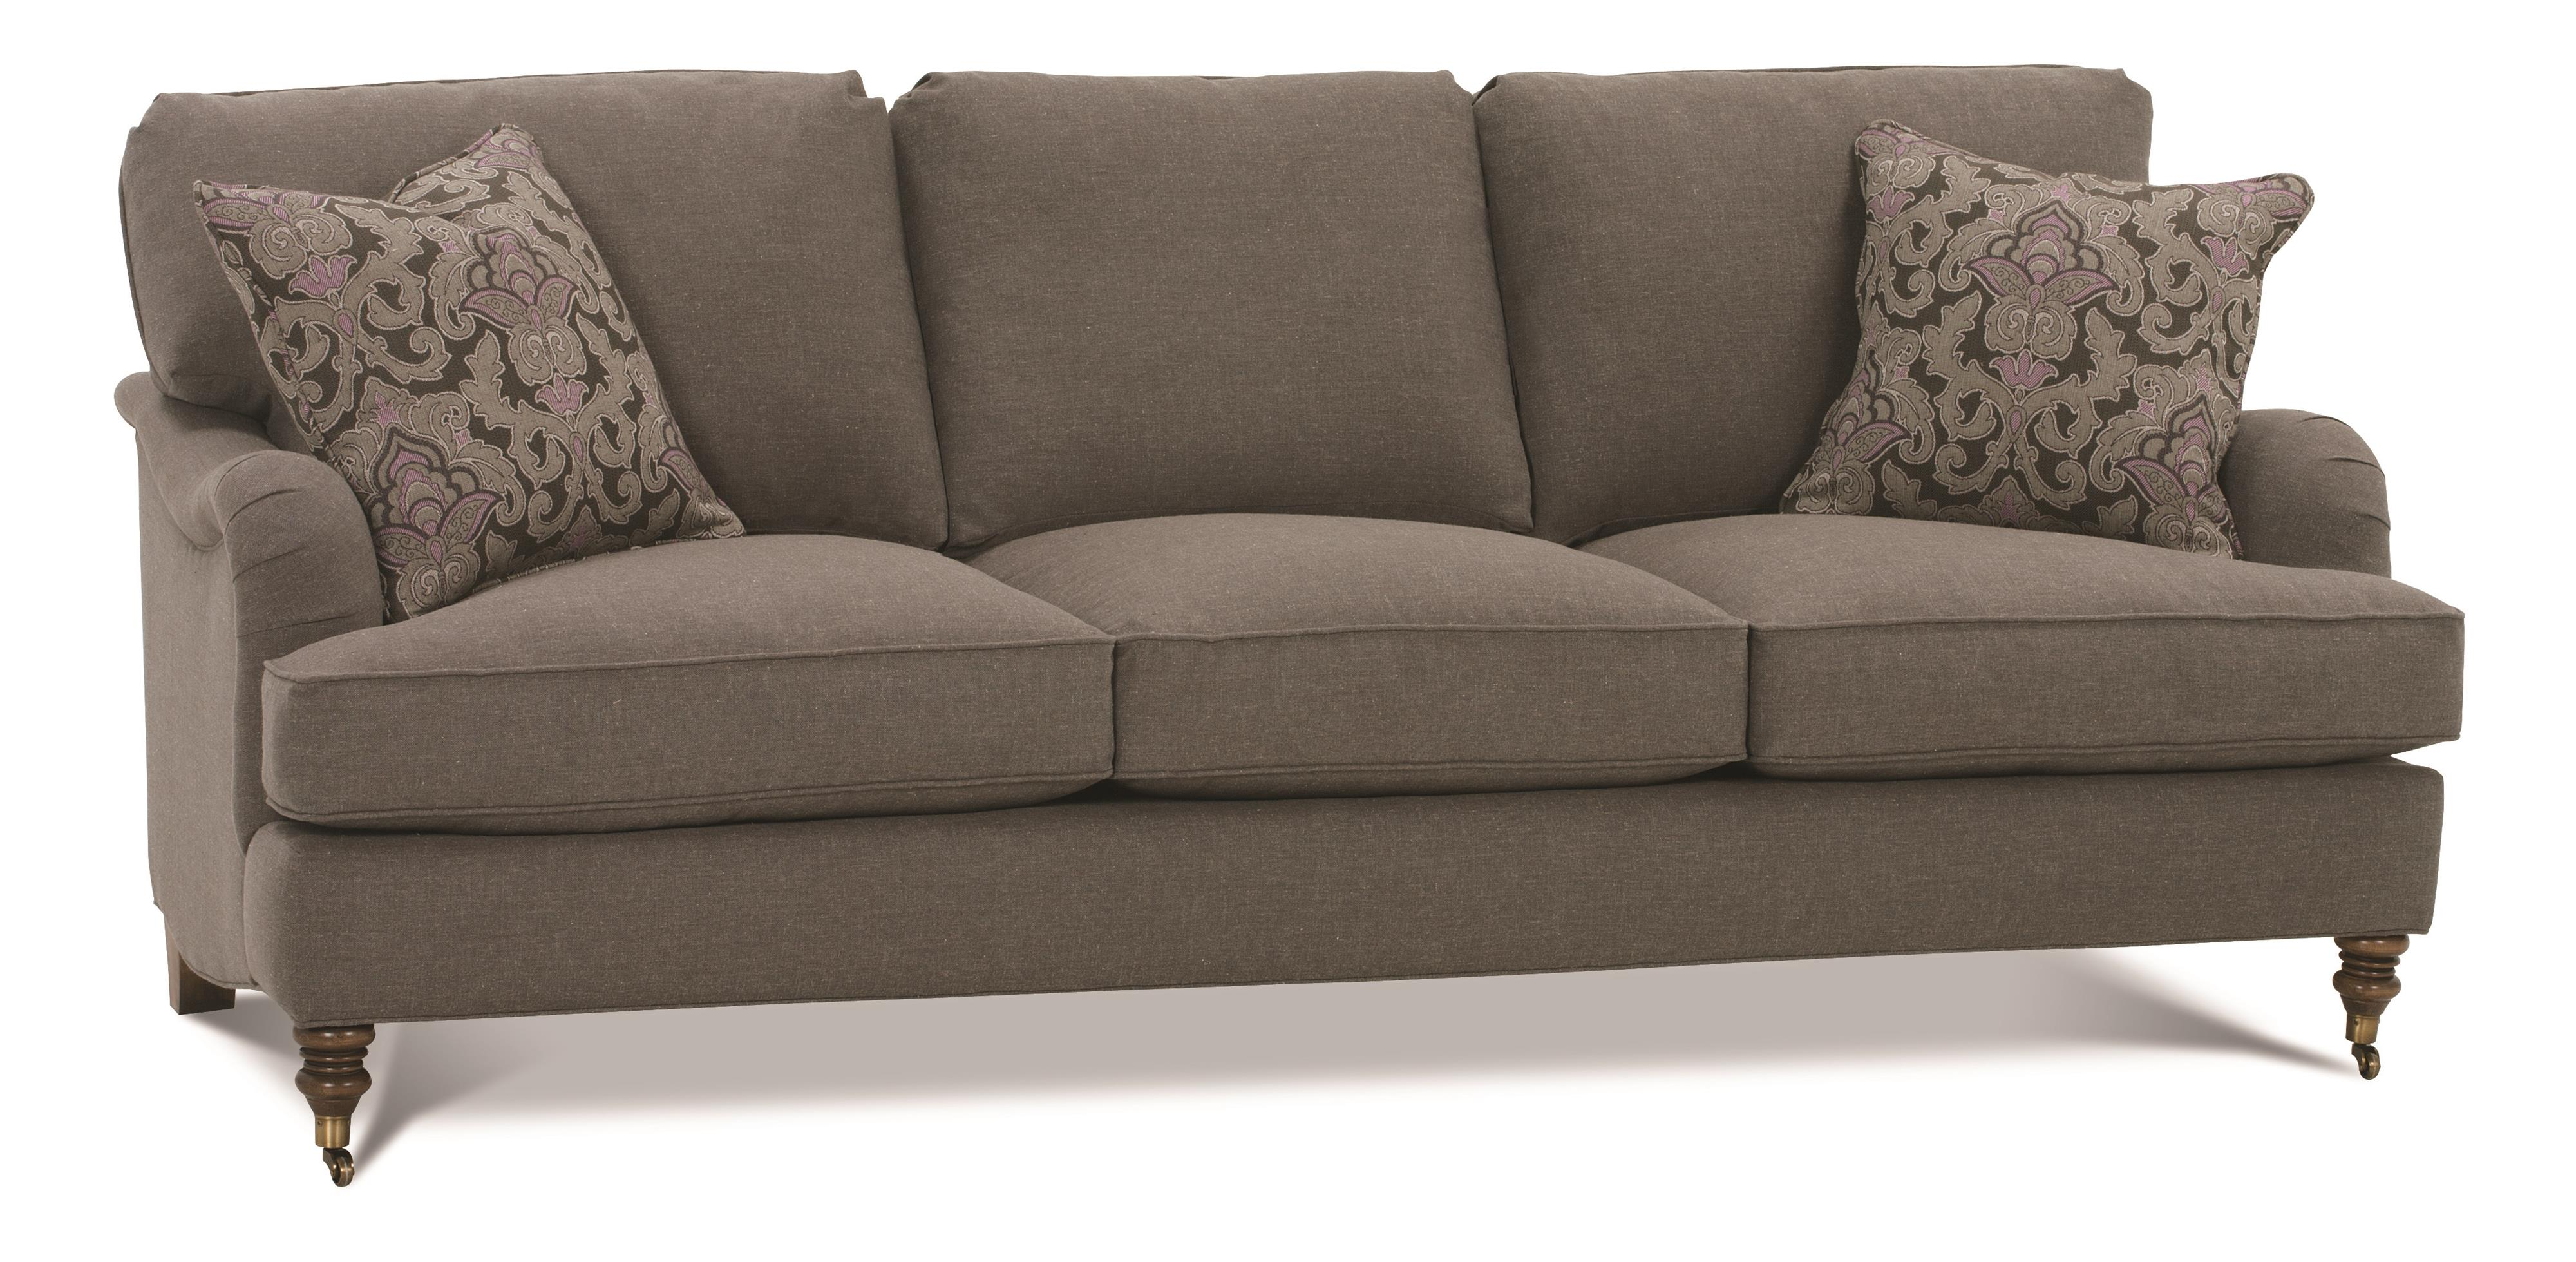 Brooke 3-Cushion Sofa with Castered Turned Feet by Robin Bruce at Saugerties Furniture Mart